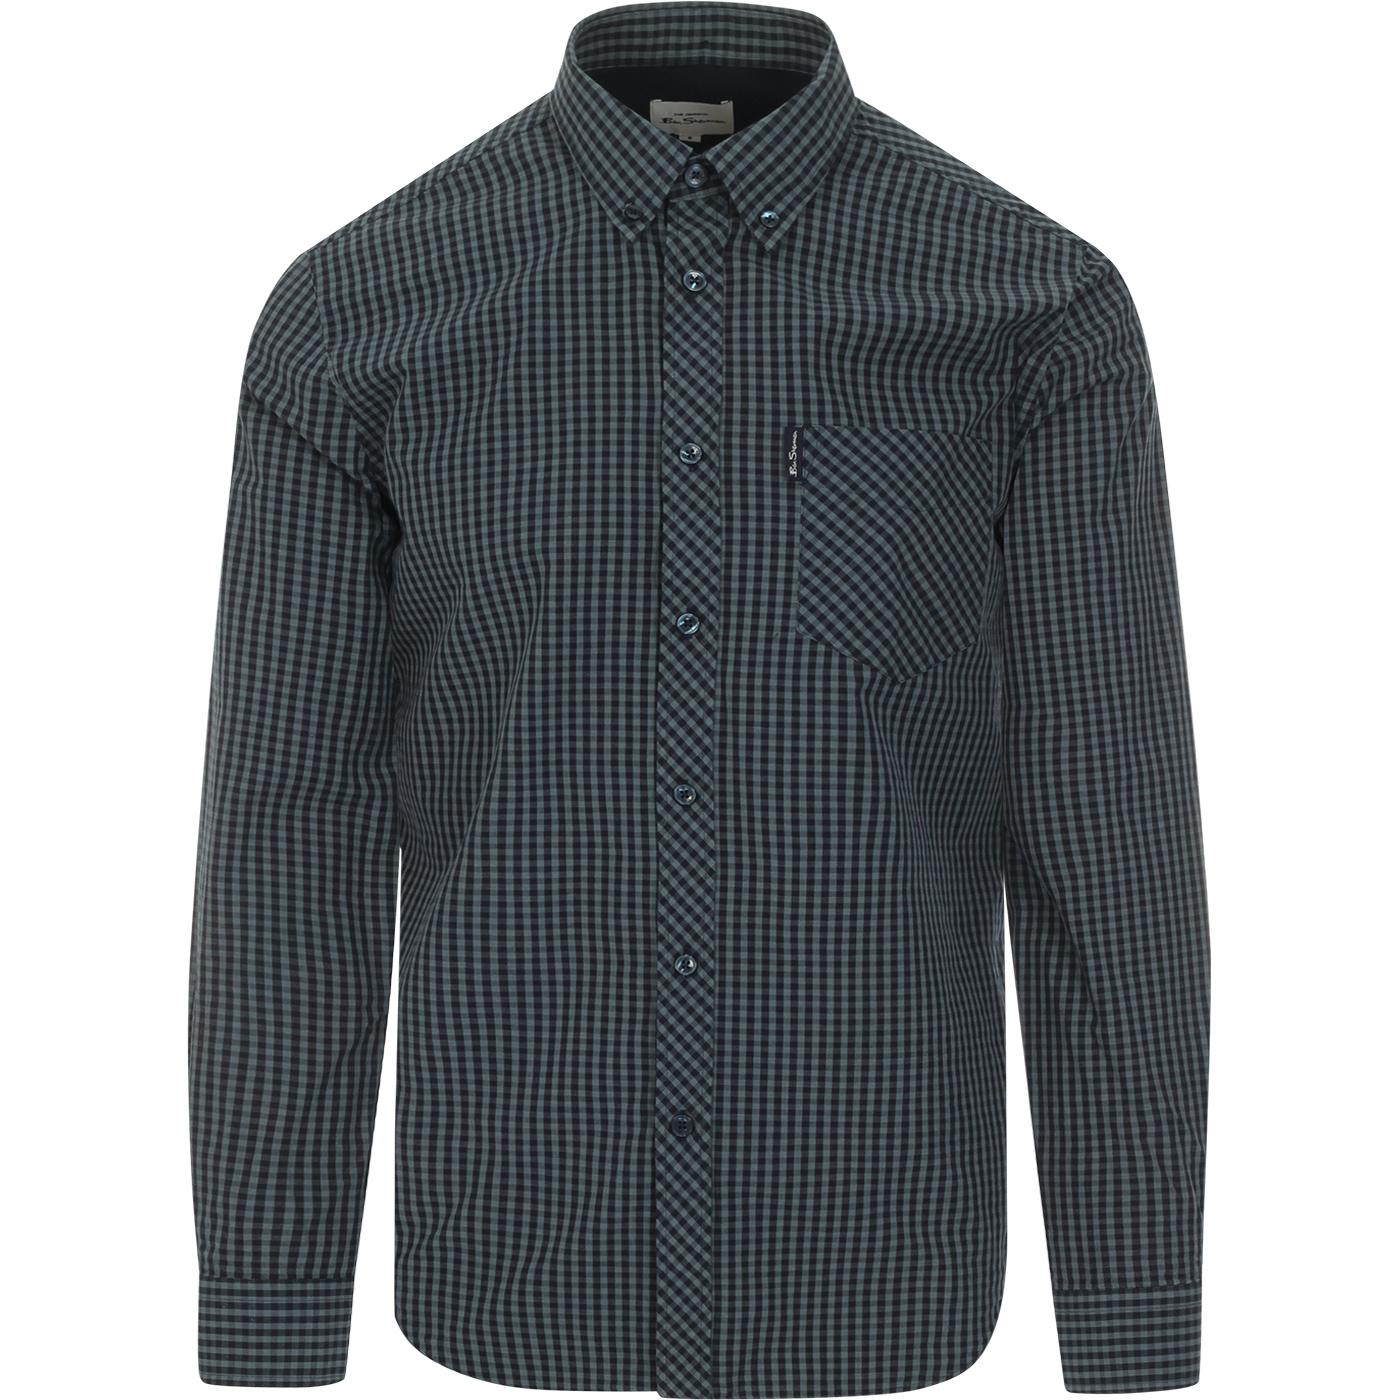 BEN SHERMAN Retro Mod Signature Gingham Shirt SEA